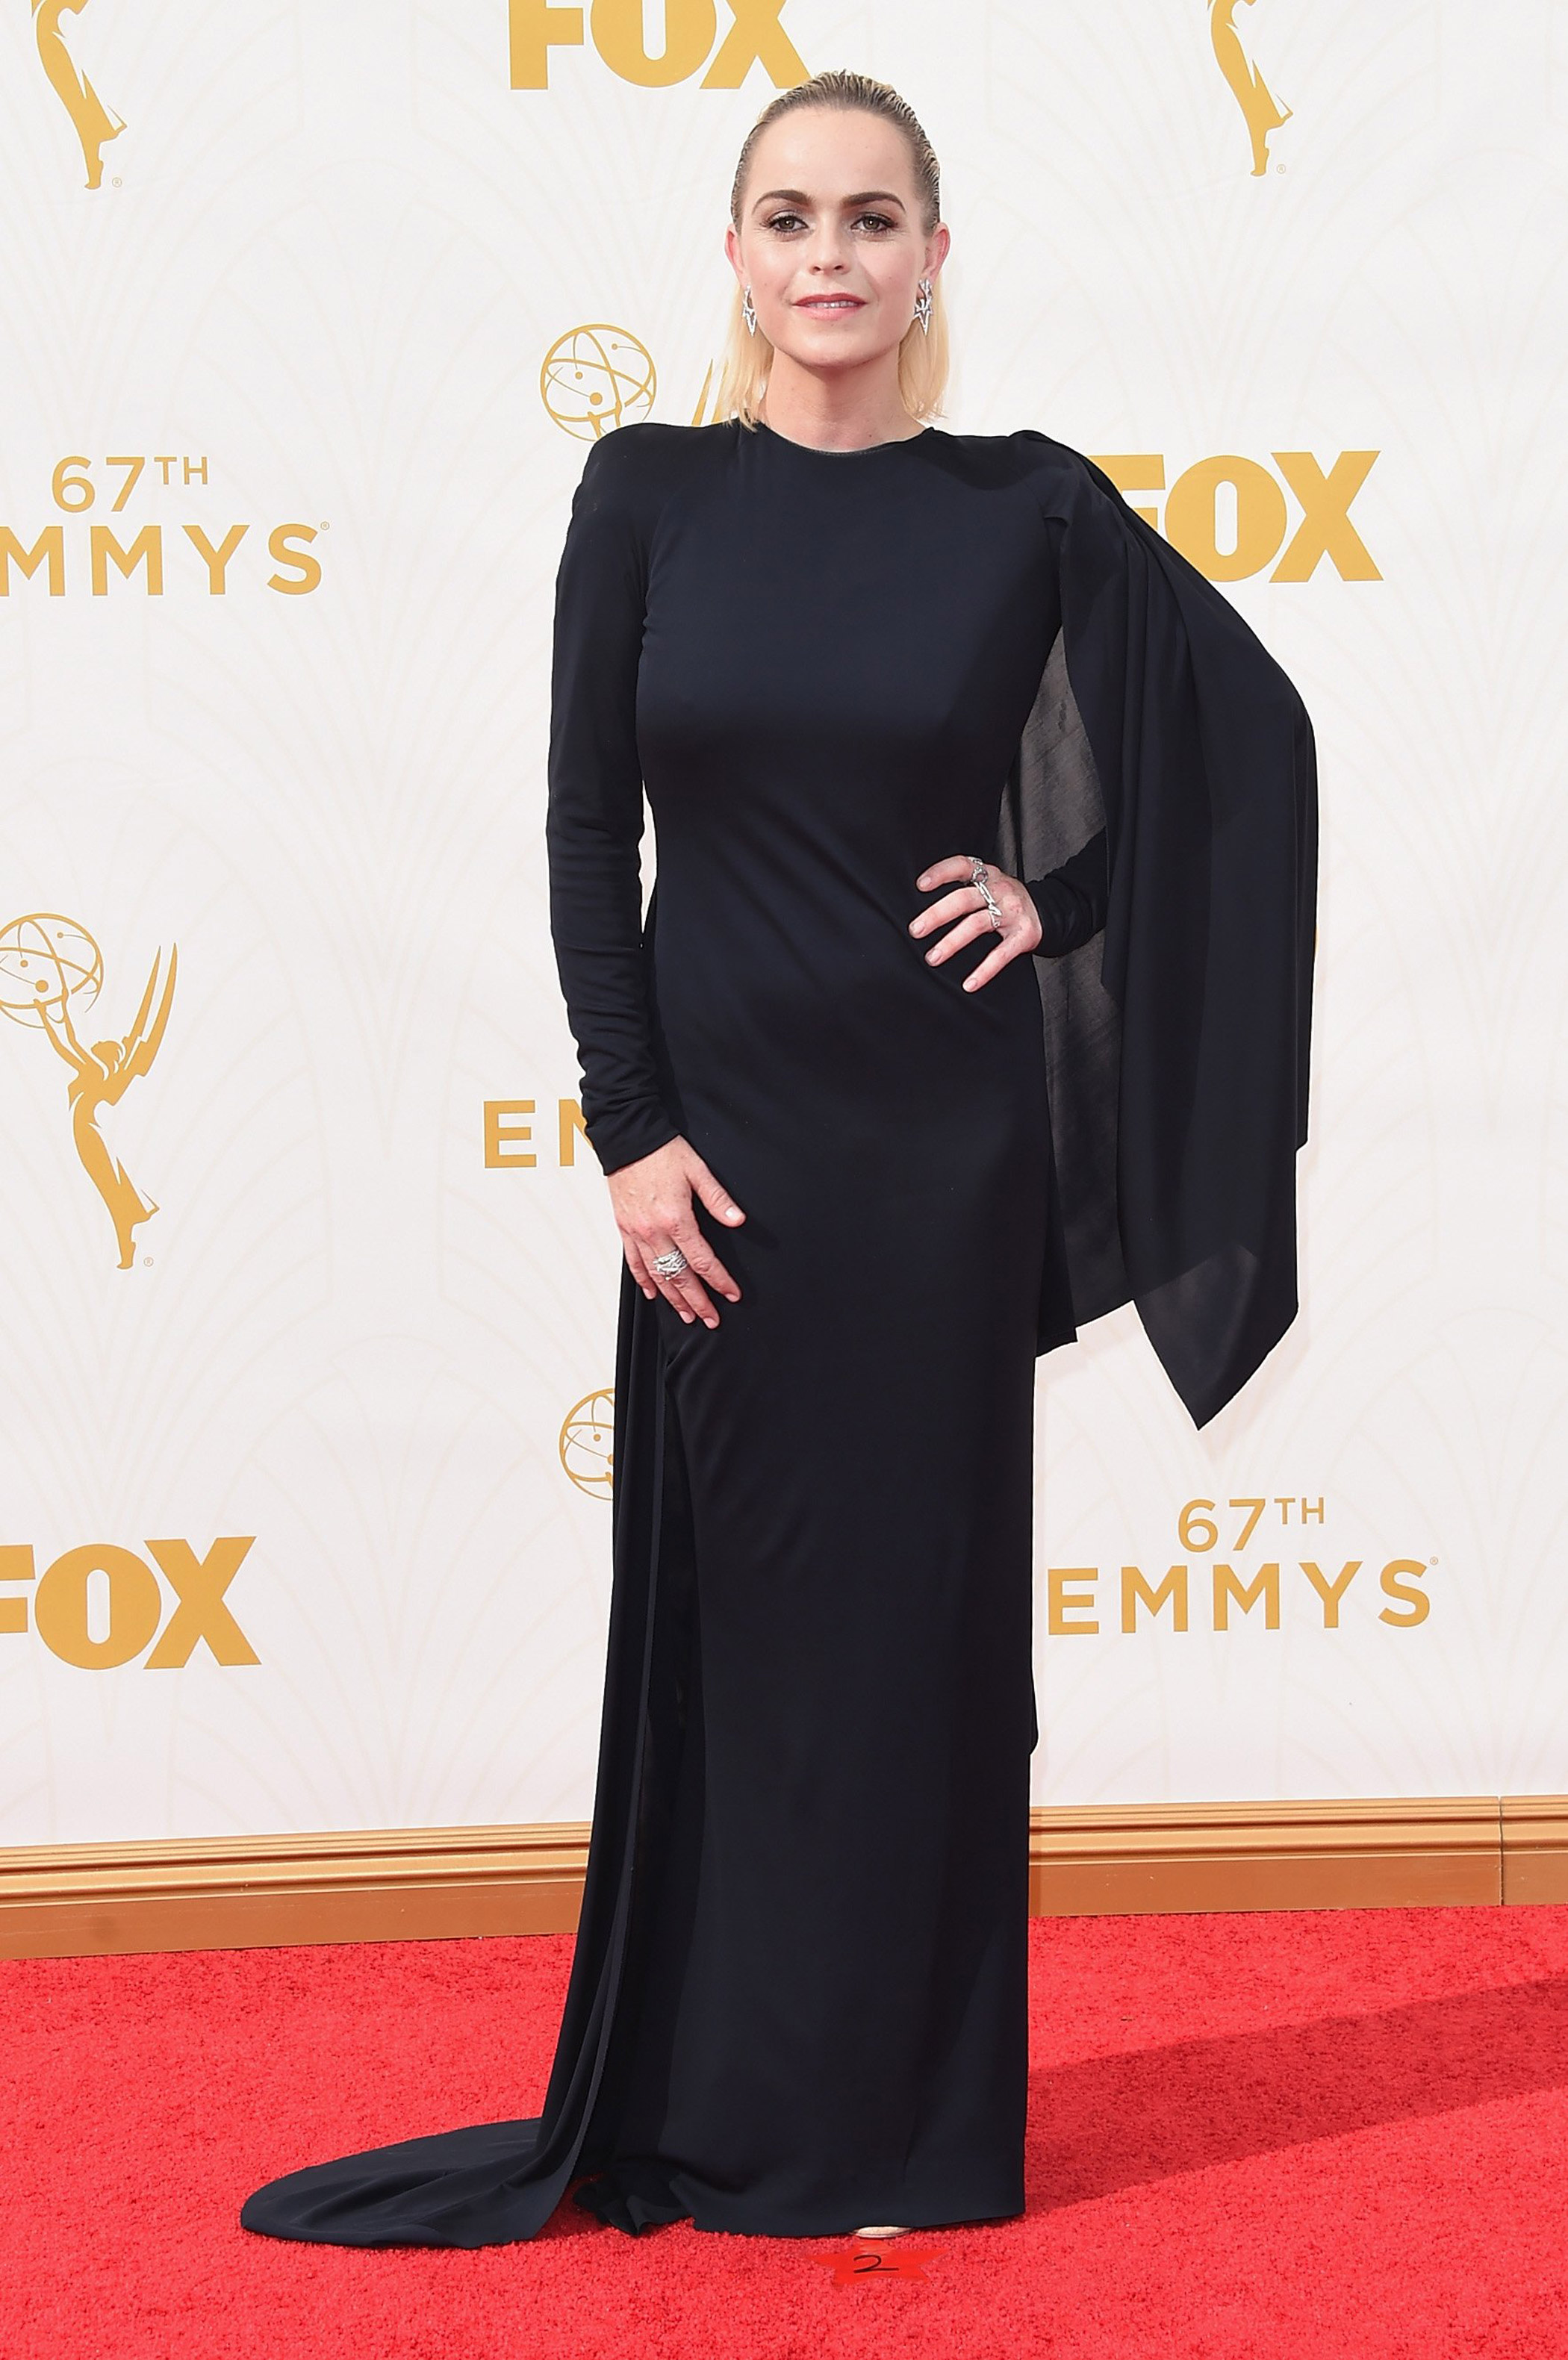 Taryn Manning at the 67th Emmy Award on Sept. 20, 2015 in Los Angeles.